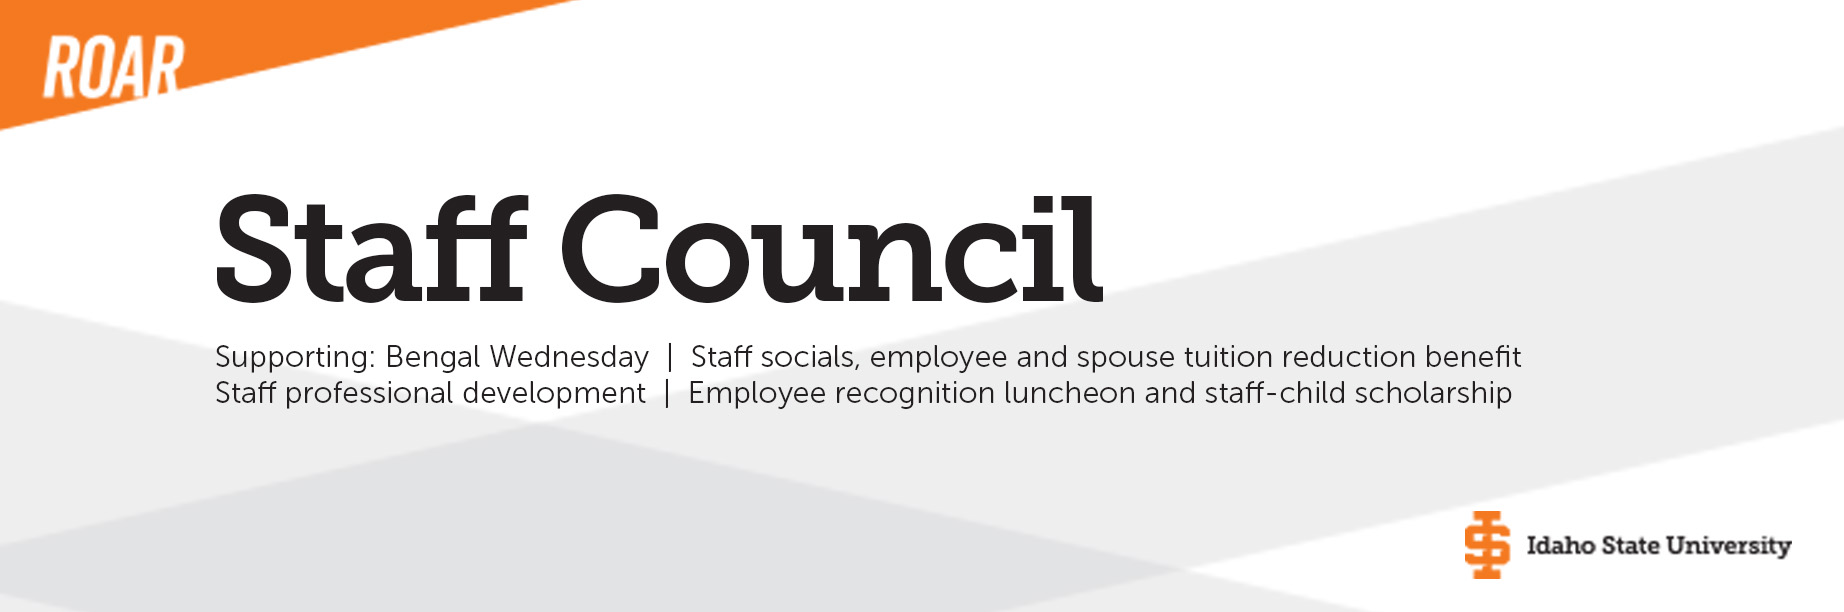 Staff Council Banner Image